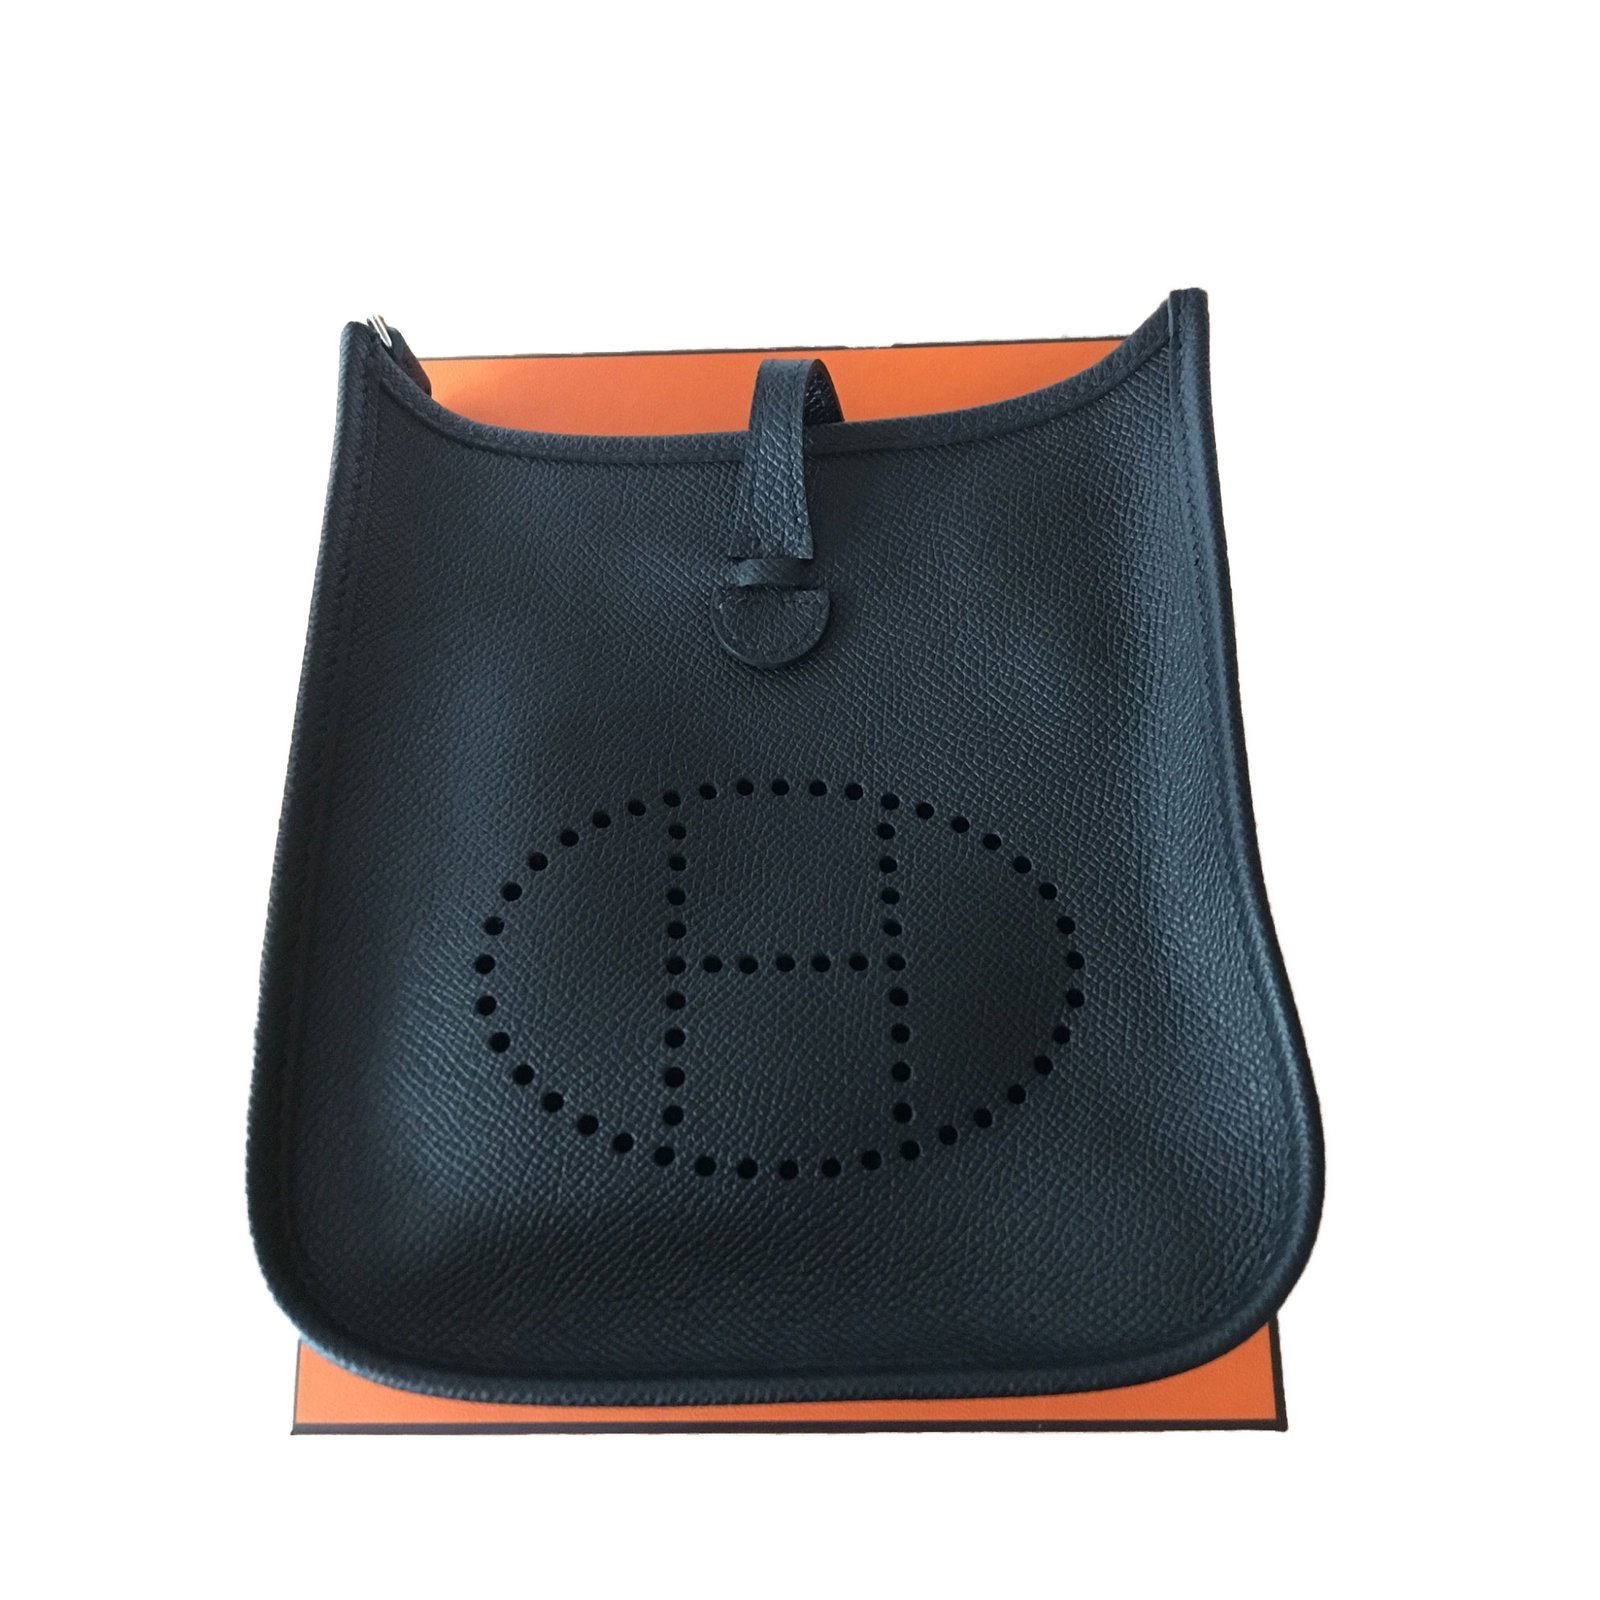 d84f4238535d ... authentic hermèsevelyneiiigmbag.png hermès evelyne handbags leather  black ref.50725 73682 11d54 ...